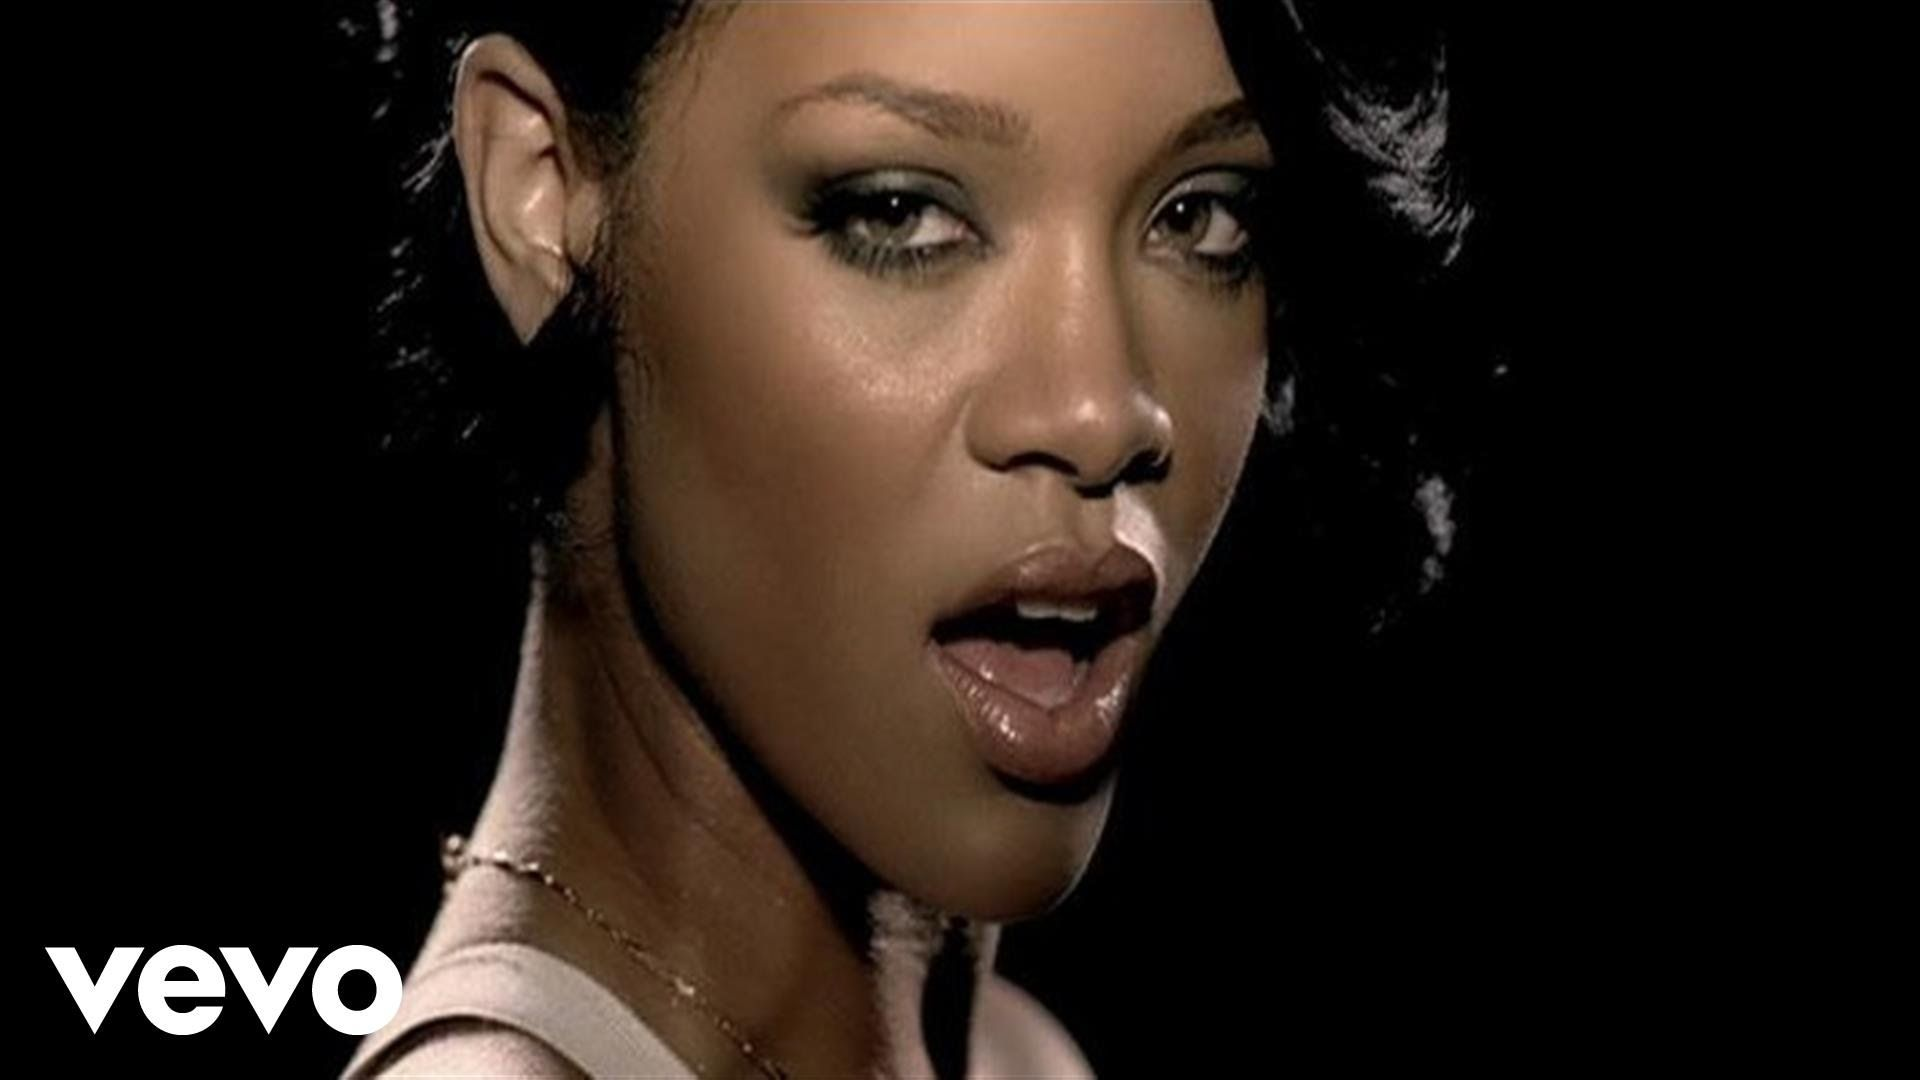 Rihanna Umbrella Ft Jay Z This Song Video Will Forever Be One